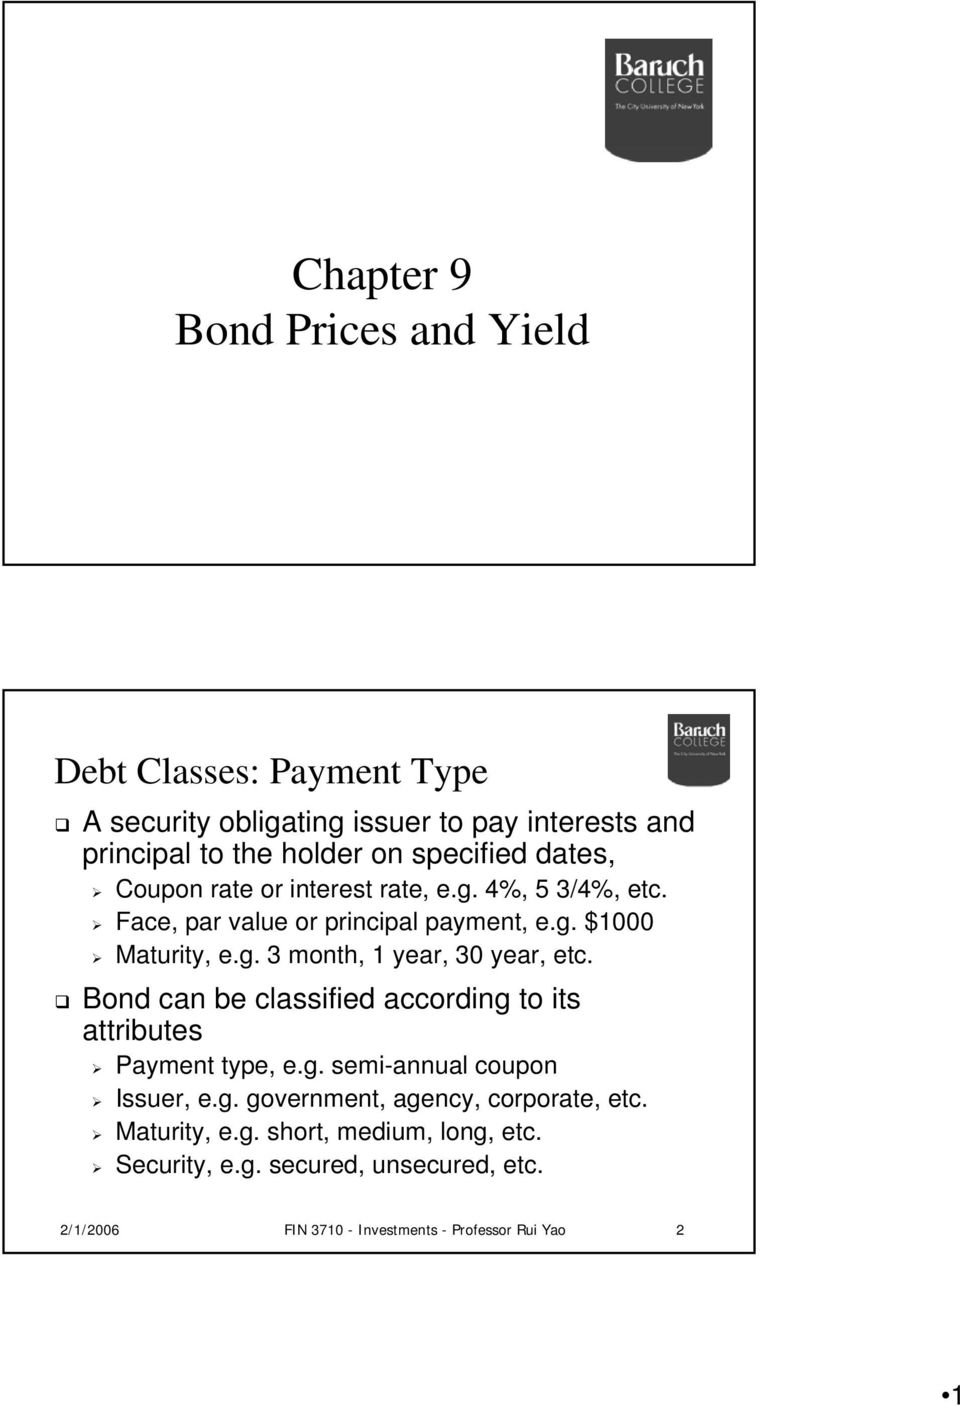 Bond can be classified according o is aribues Paymen ype, e.g. semi-annual coupon Issuer, e.g. governmen, agency, corporae, ec.